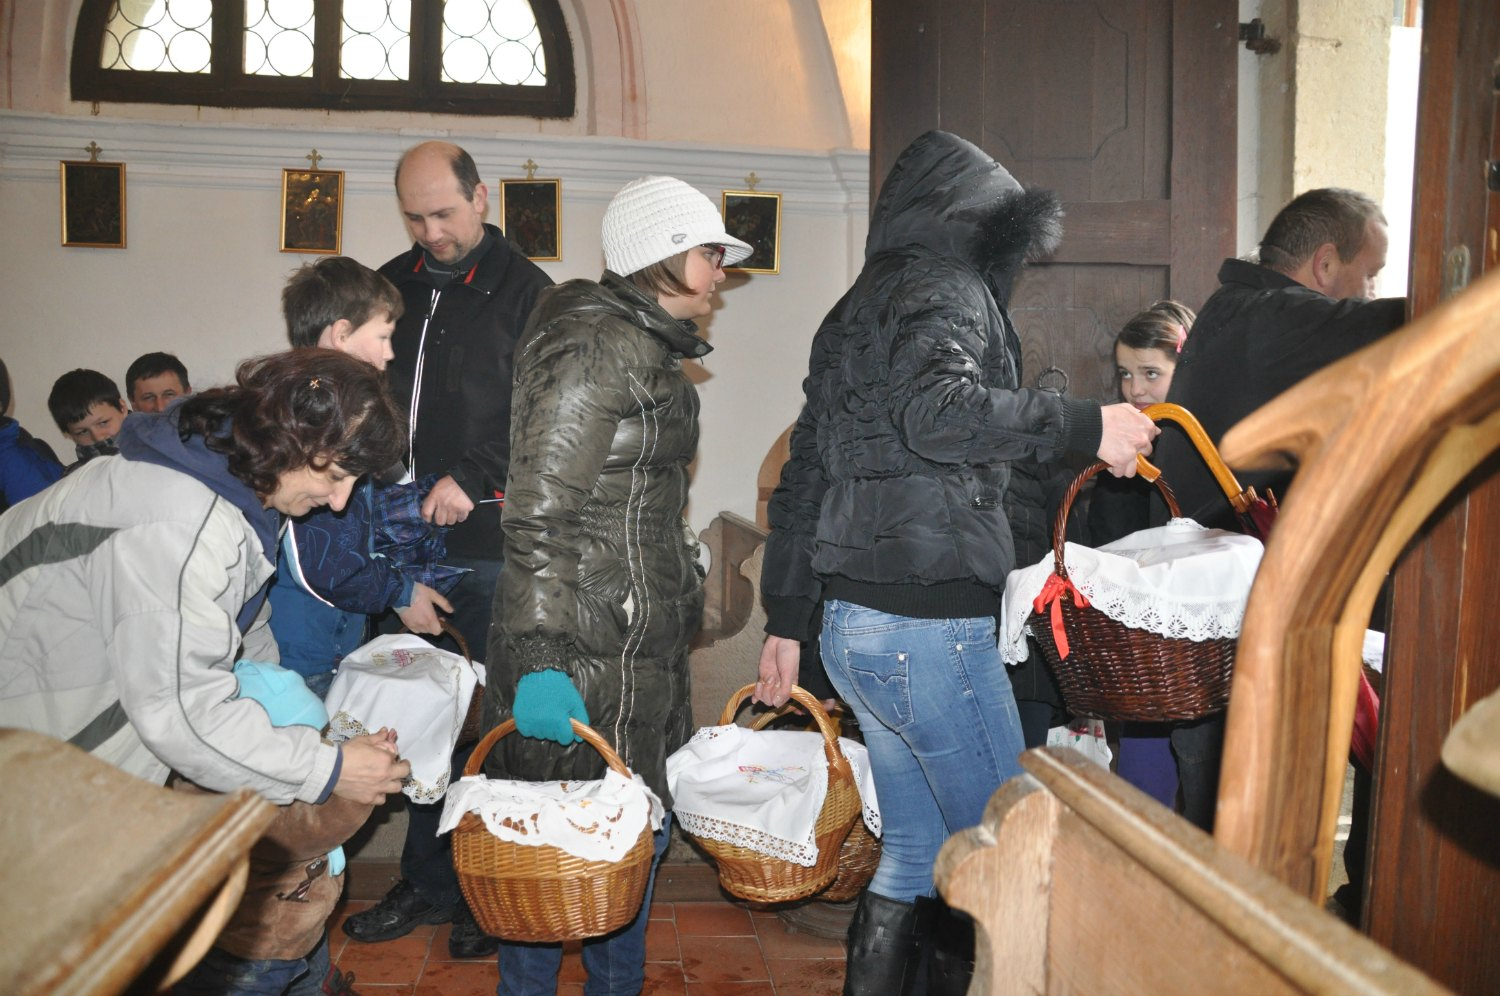 Church-goers leaving with their blessed Easter baskets.